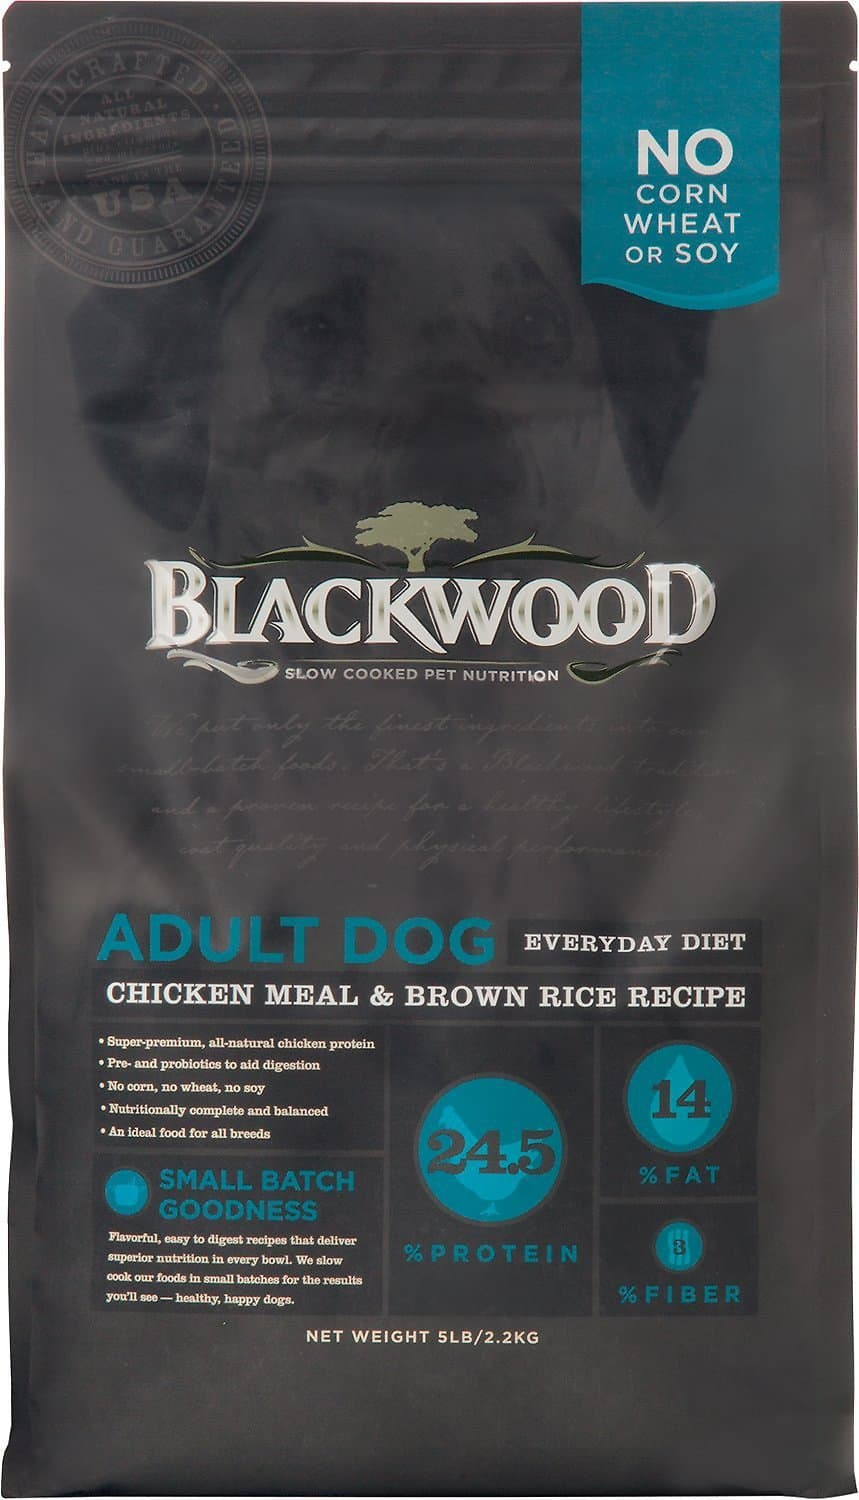 Blackwood Dog Food Review [year]: Best Slow Cooked Pet Nutrition? 14